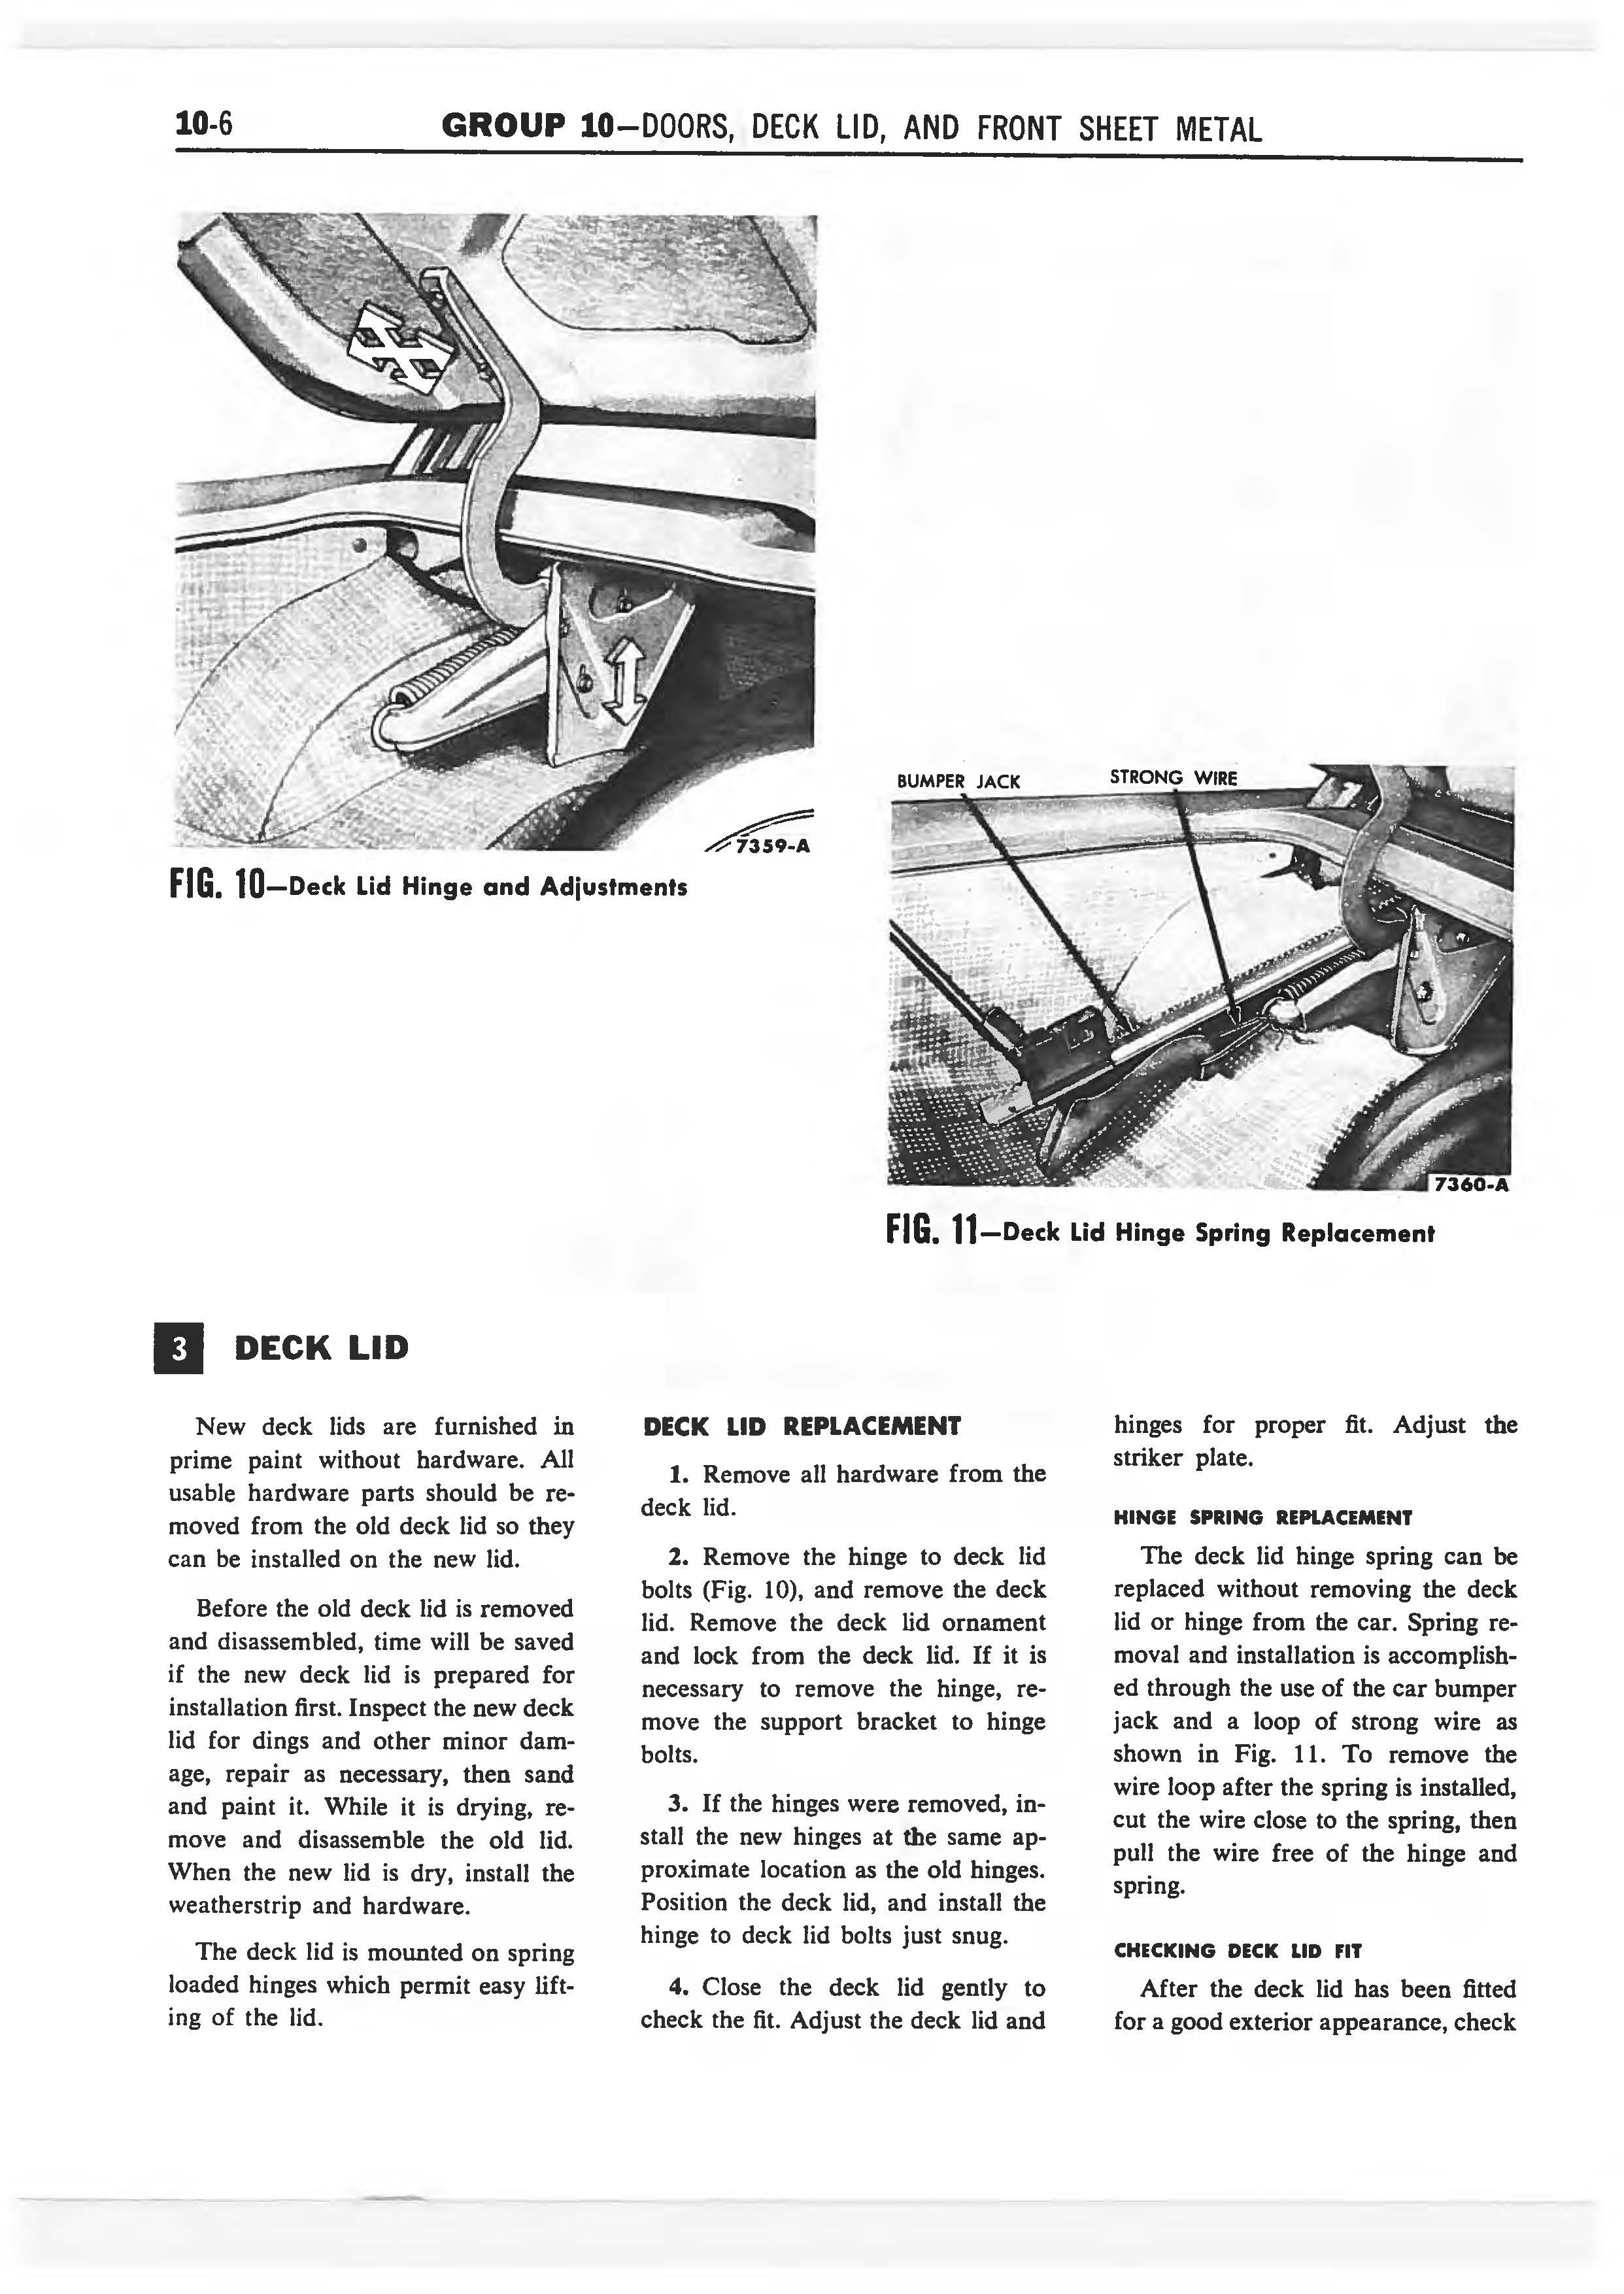 1958 Ford Thunderbird Shop Manual page 309 of 360